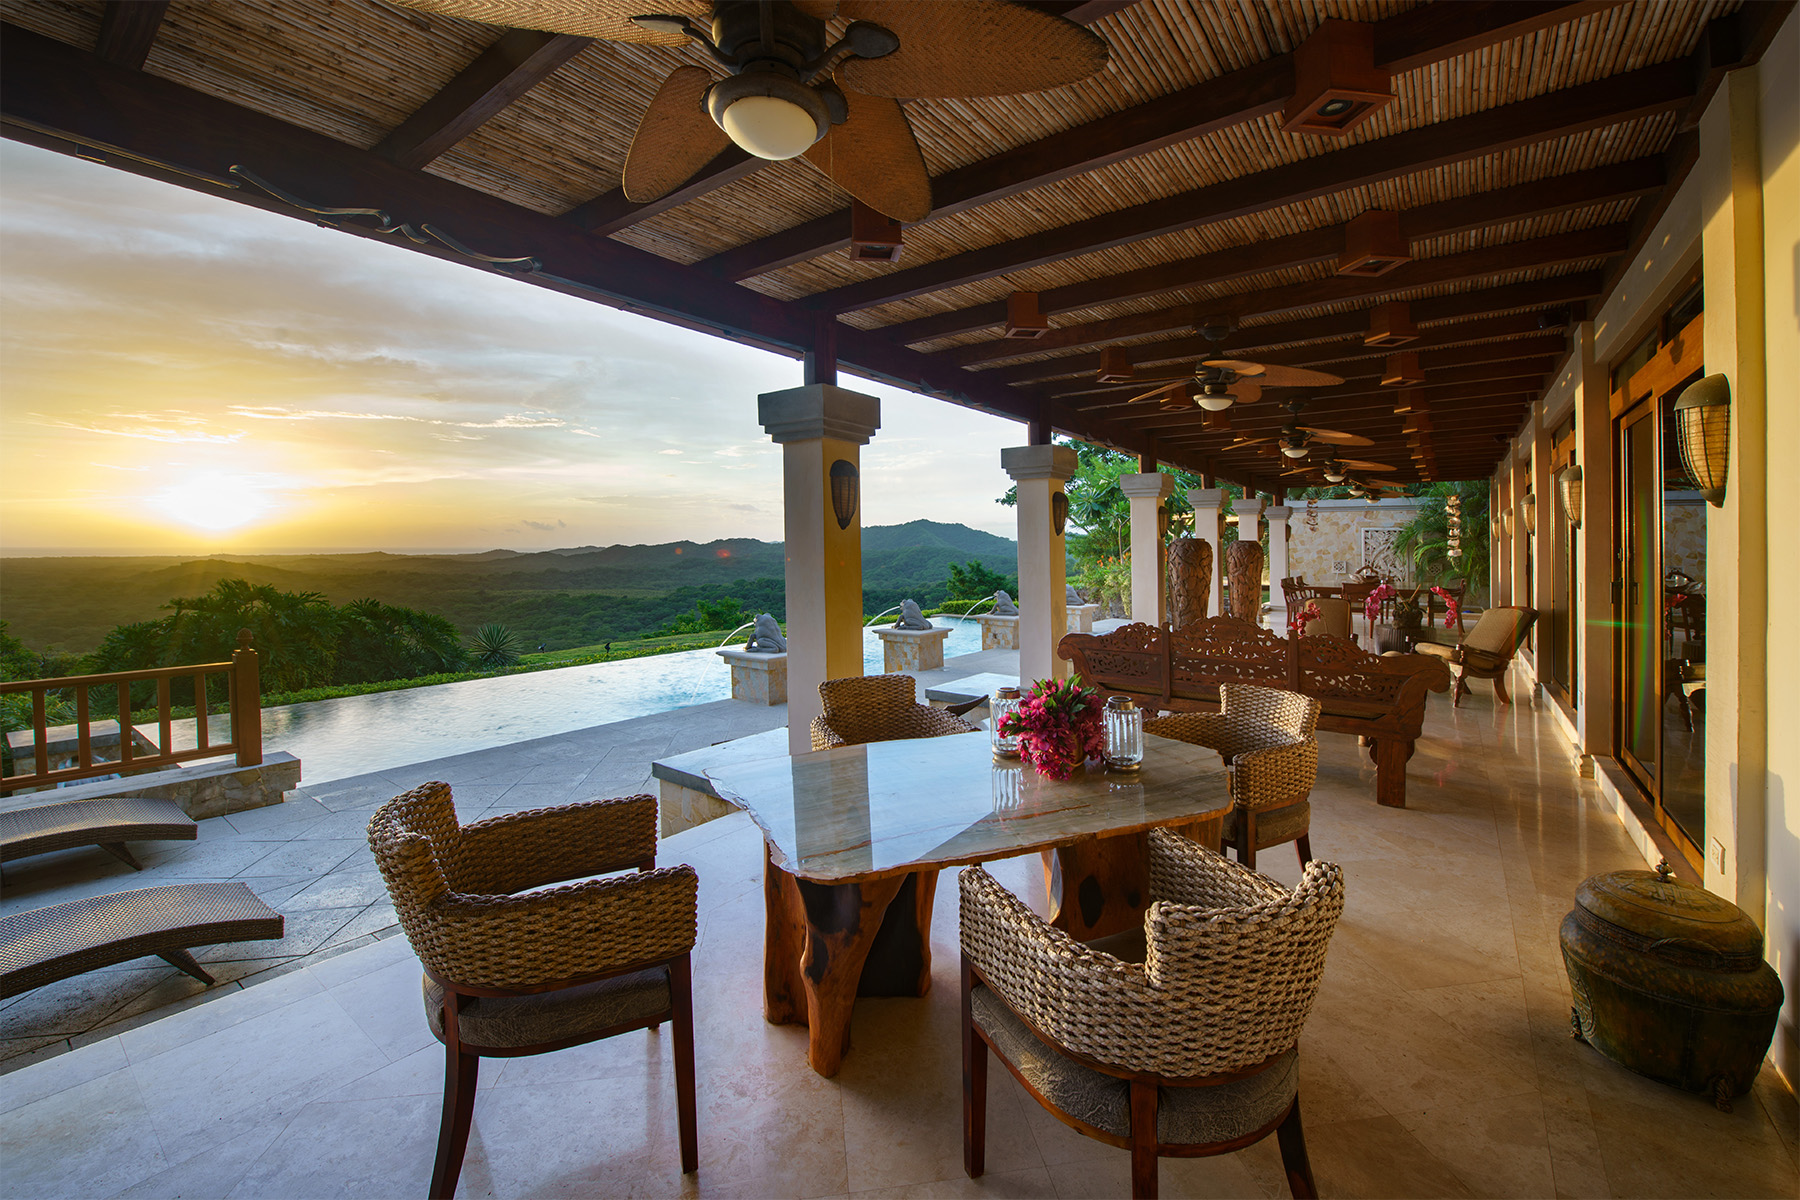 Single Family Home for Sale at Casa Bali Sueños Tamarindo, Guanacaste Costa Rica